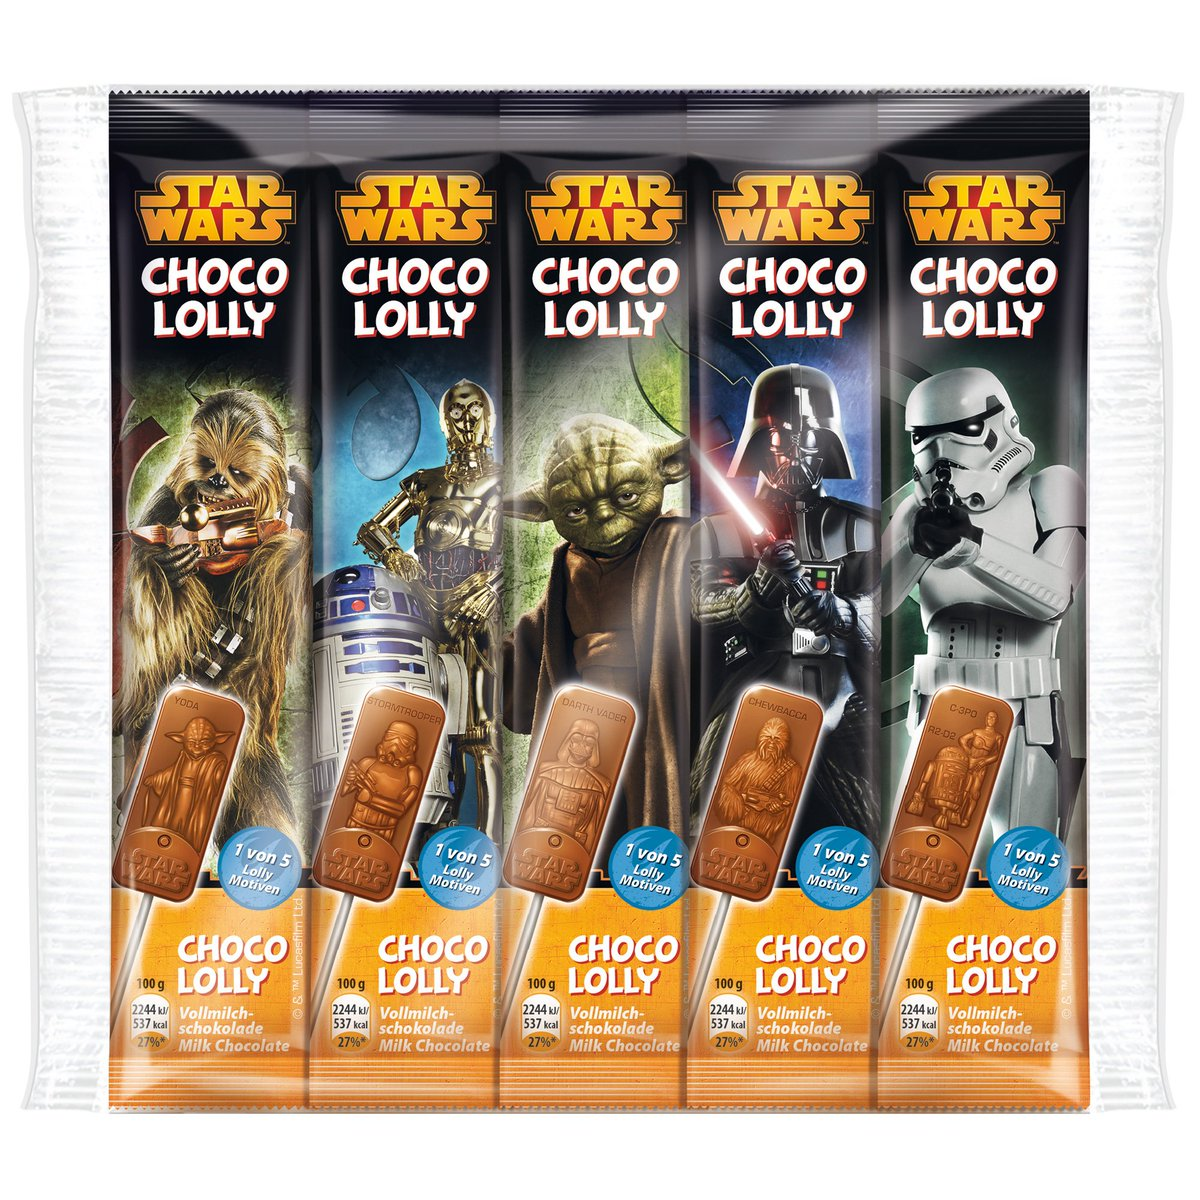 starwars choco lolly